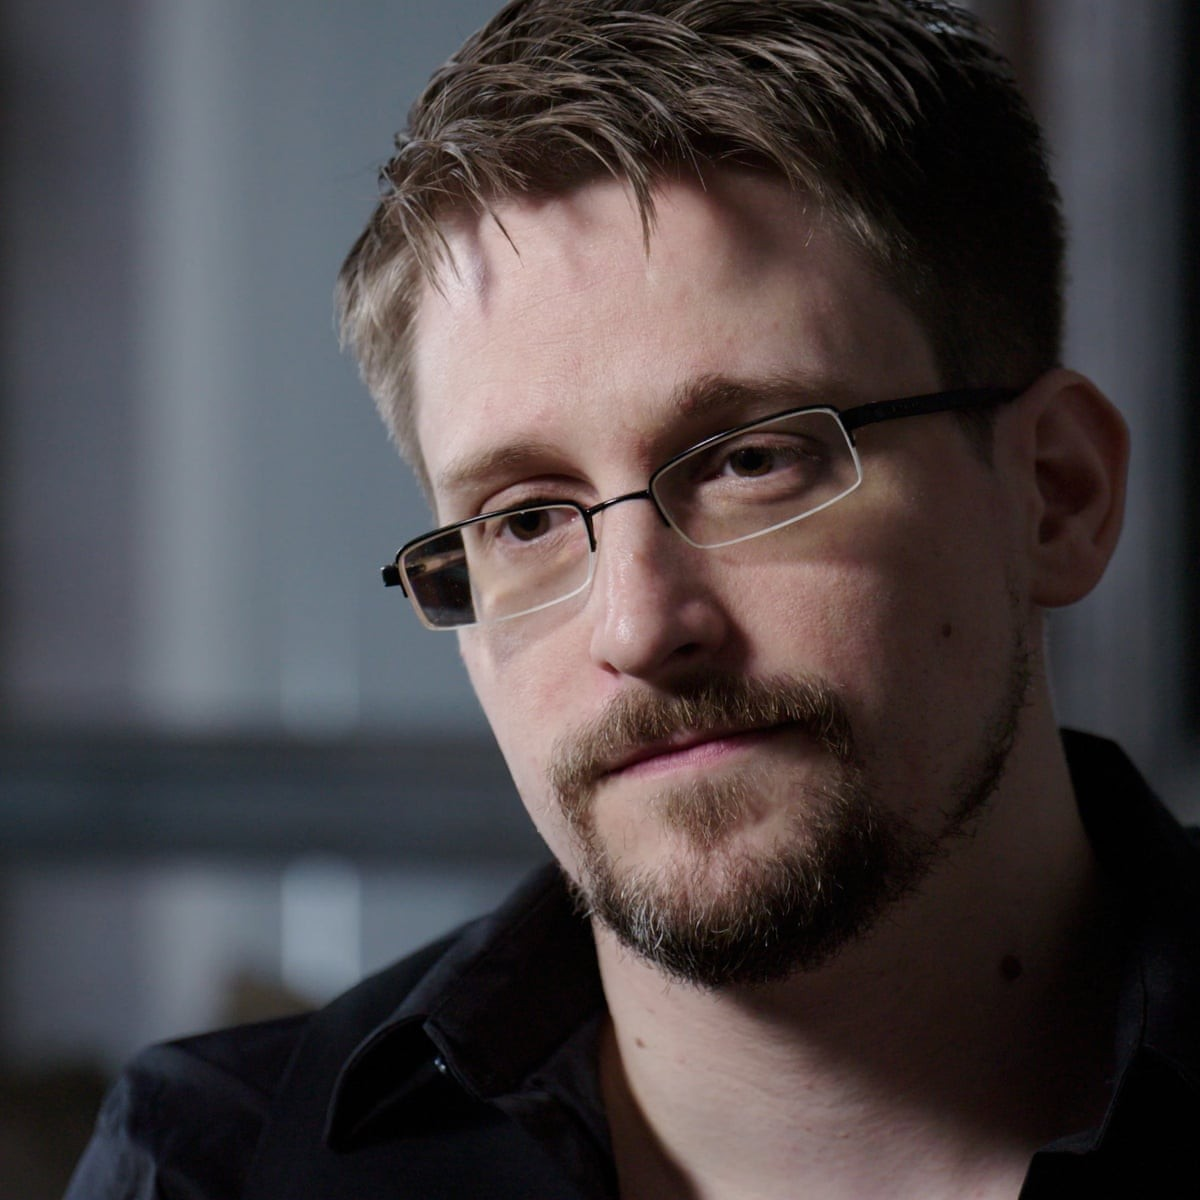 Headshot of Edward Snowden from shoulders up. White man with short-cropped brown hair, wireframe glasses and goatee. Wearing black, button-up shirt.